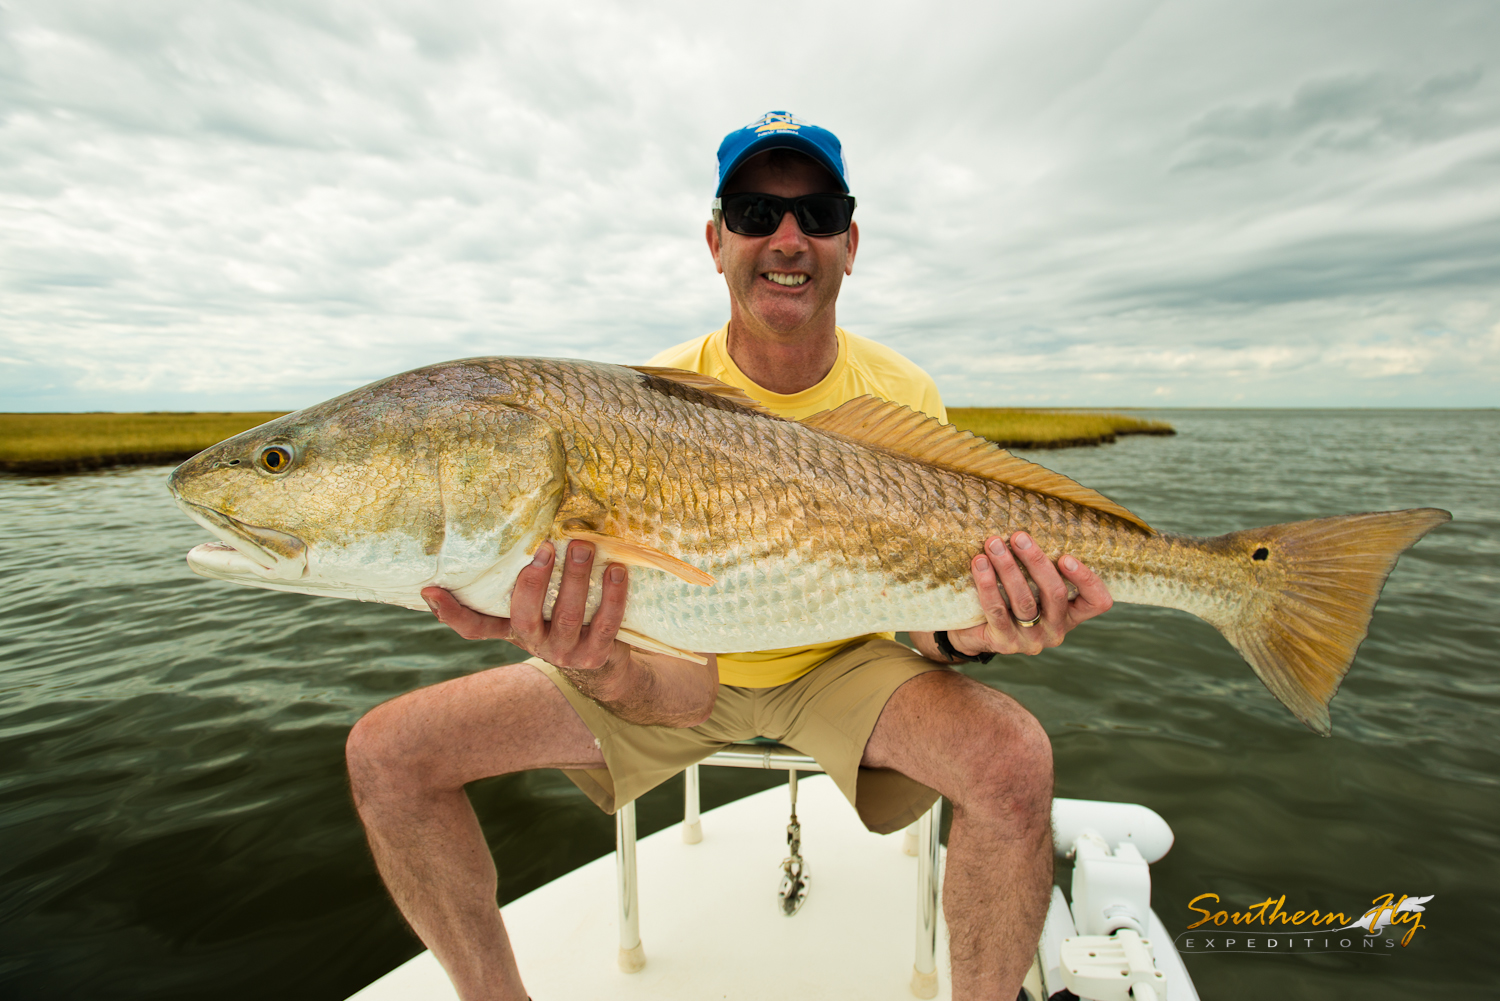 southern fly fishing guide Southern Fly Expeditions